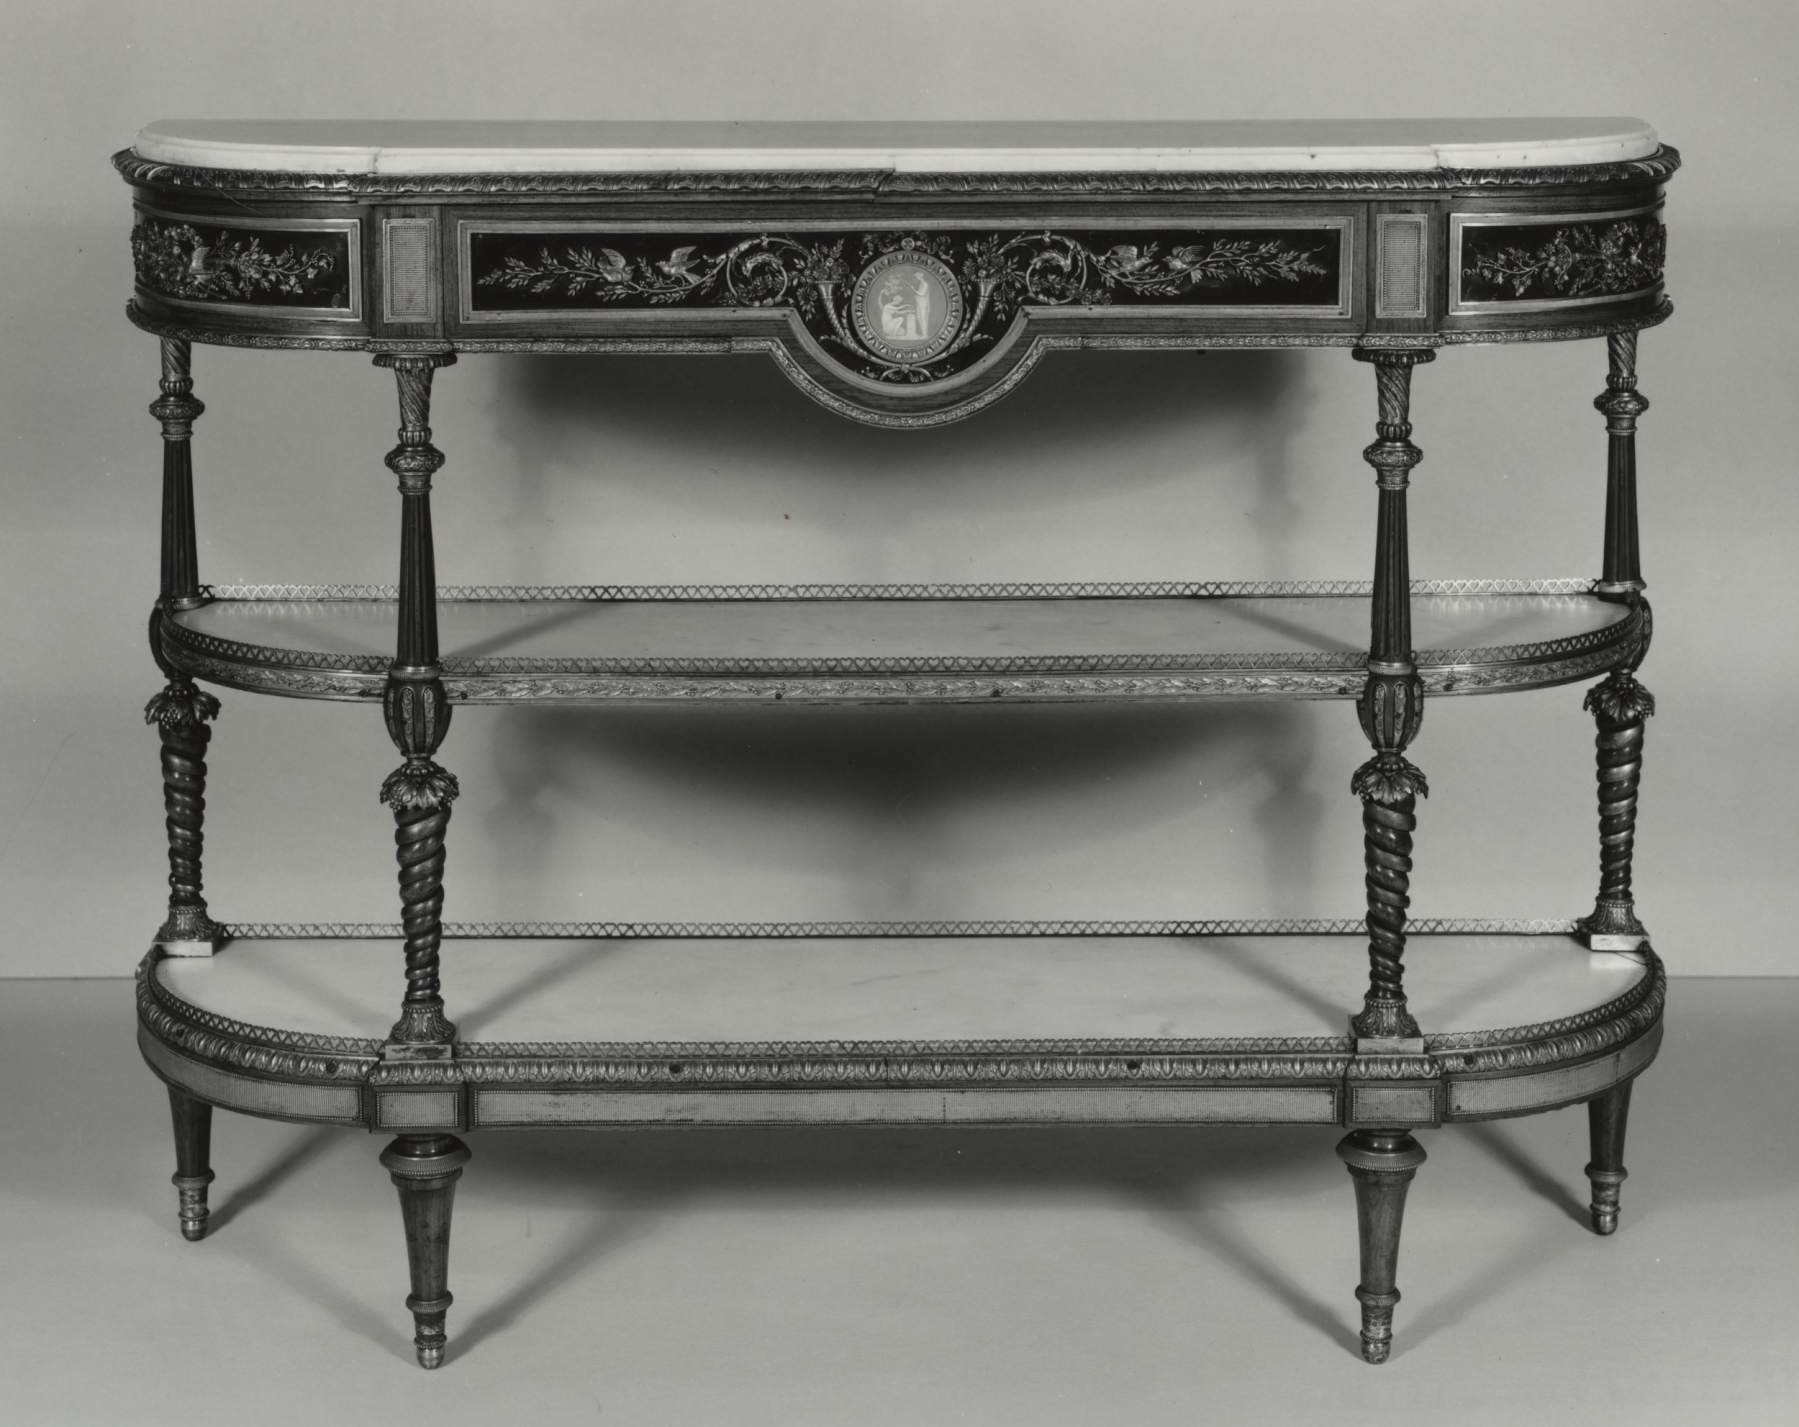 File:josiah Wedgwood – Console – Walters 6518 – Wikimedia Commons Regarding Walters Media Console Tables (View 7 of 20)